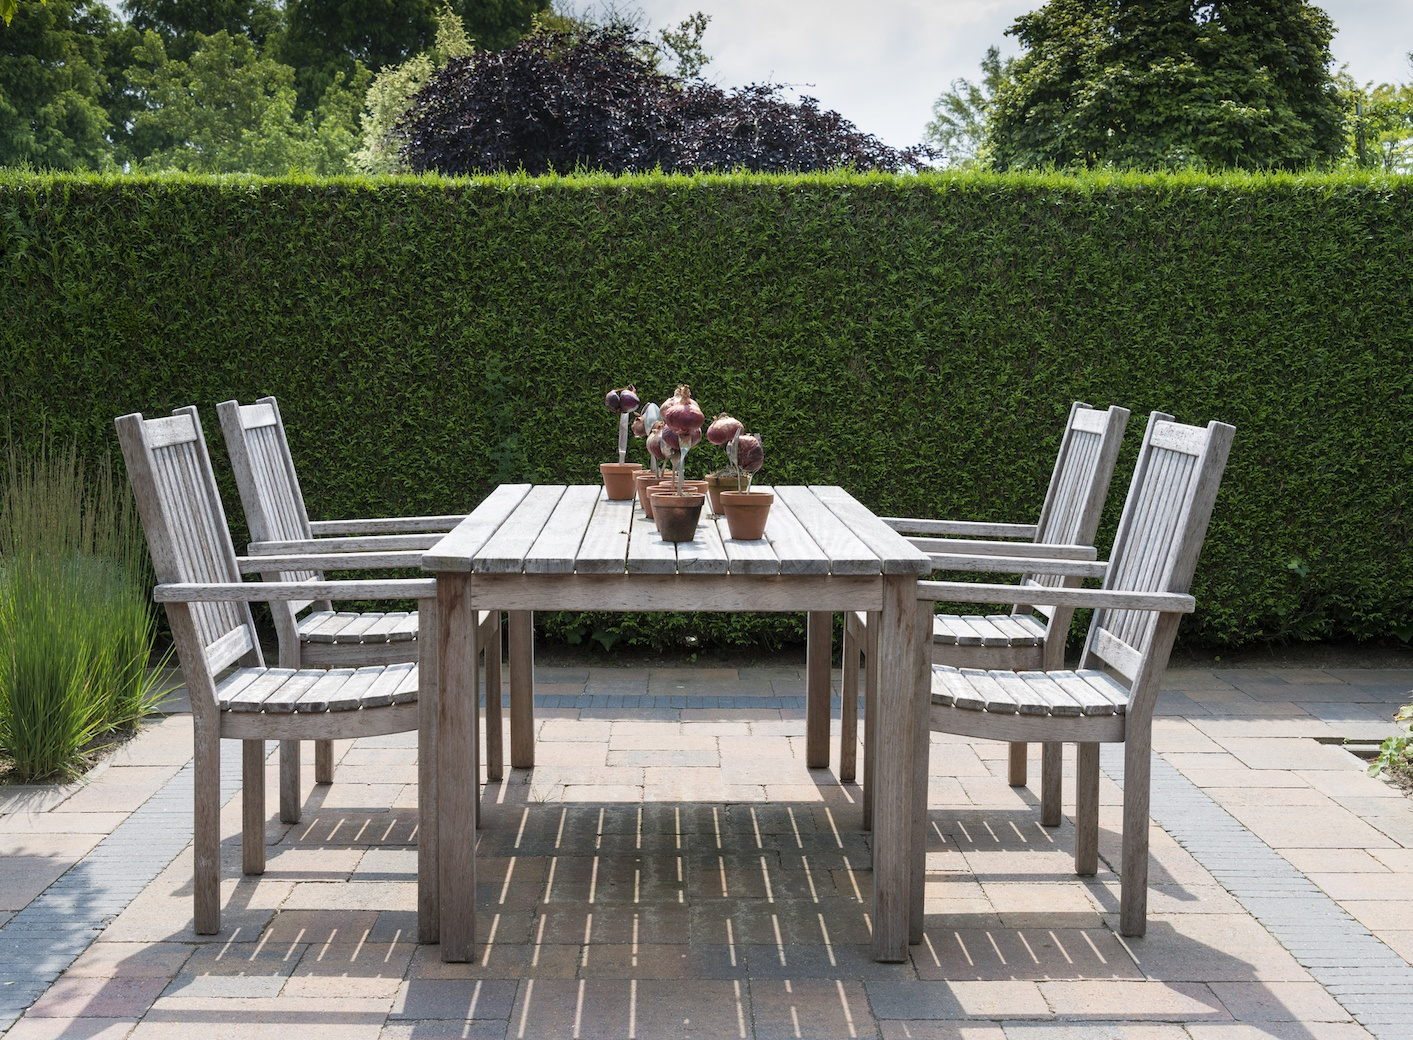 wooden garden furniture in garden with yew hedge